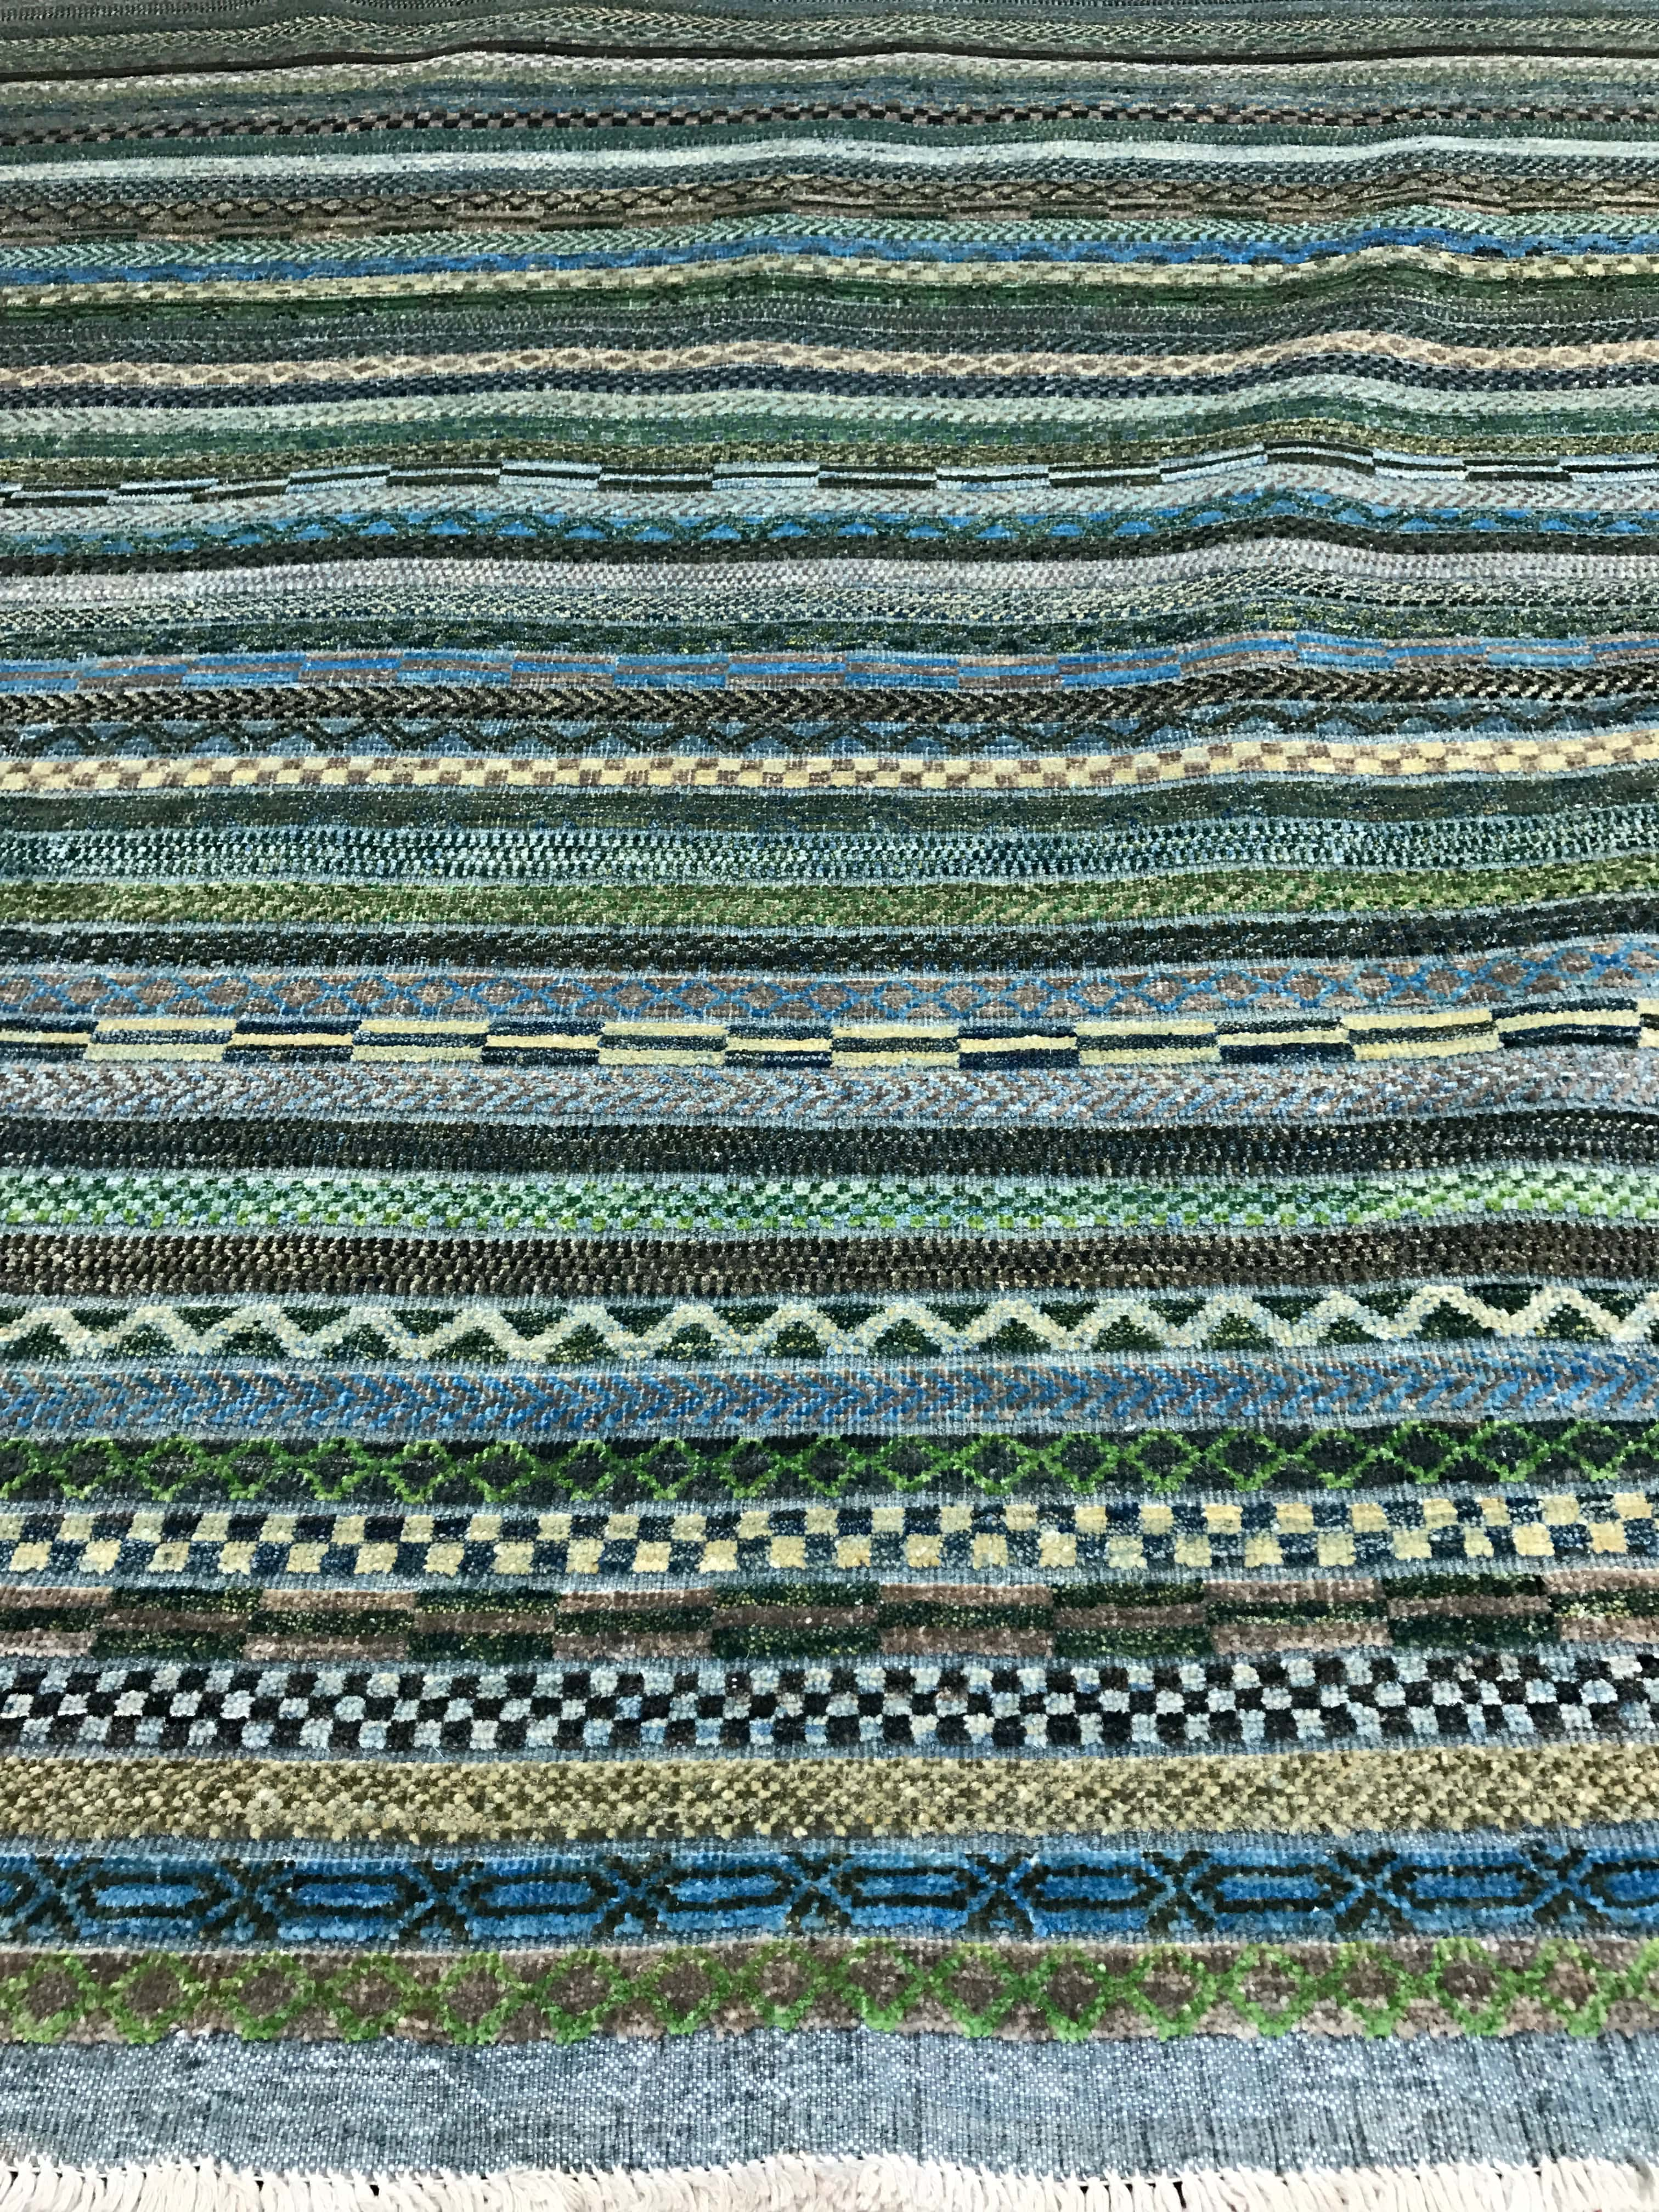 South West Green And Blue Rug High And Low Design Scottsdale AZ Overview PV  Rugs